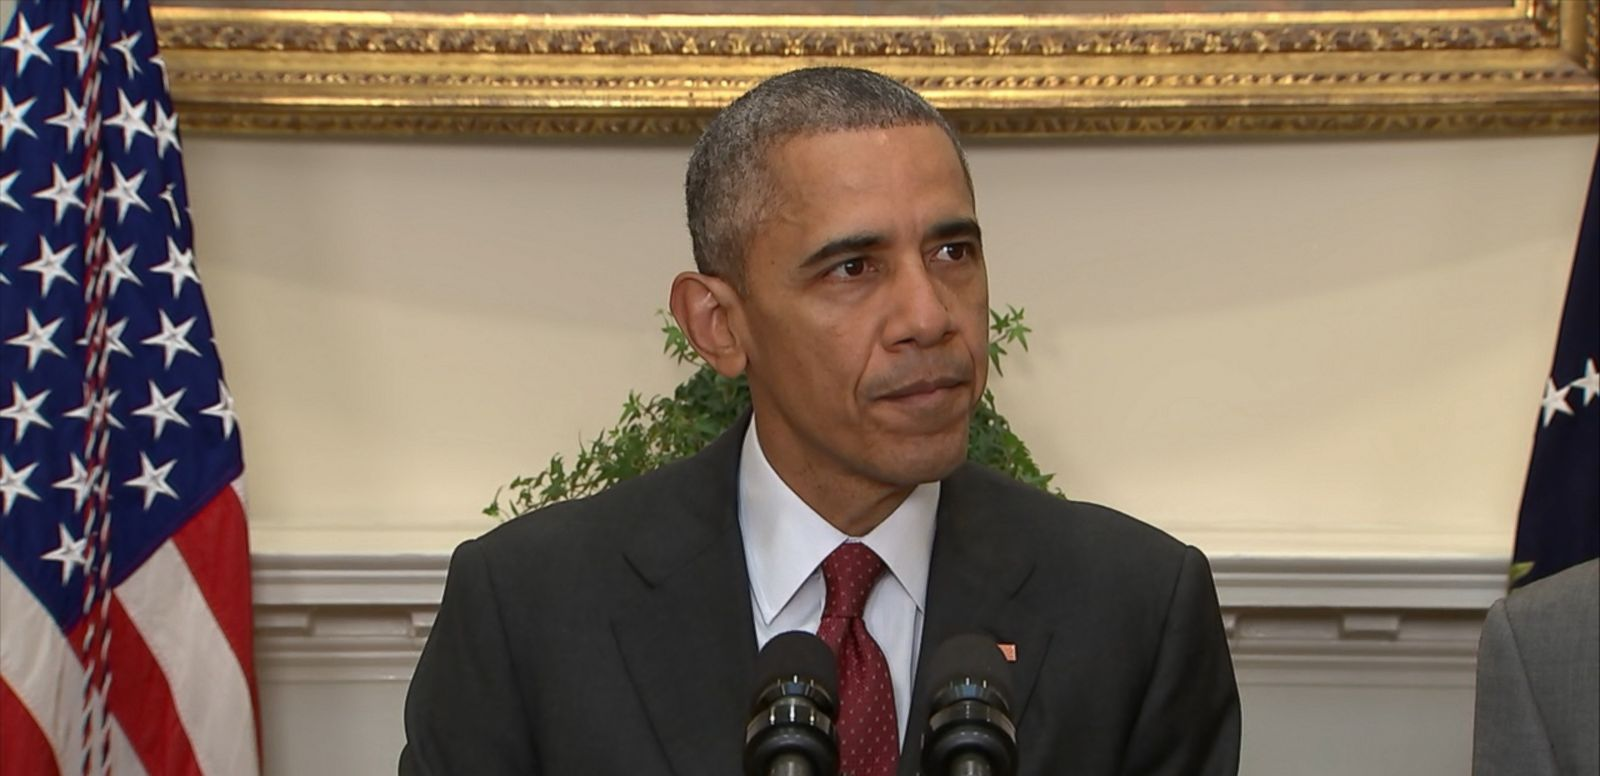 VIDEO: President Obama remarks on homeland security before the Thanksgiving holiday weekend.